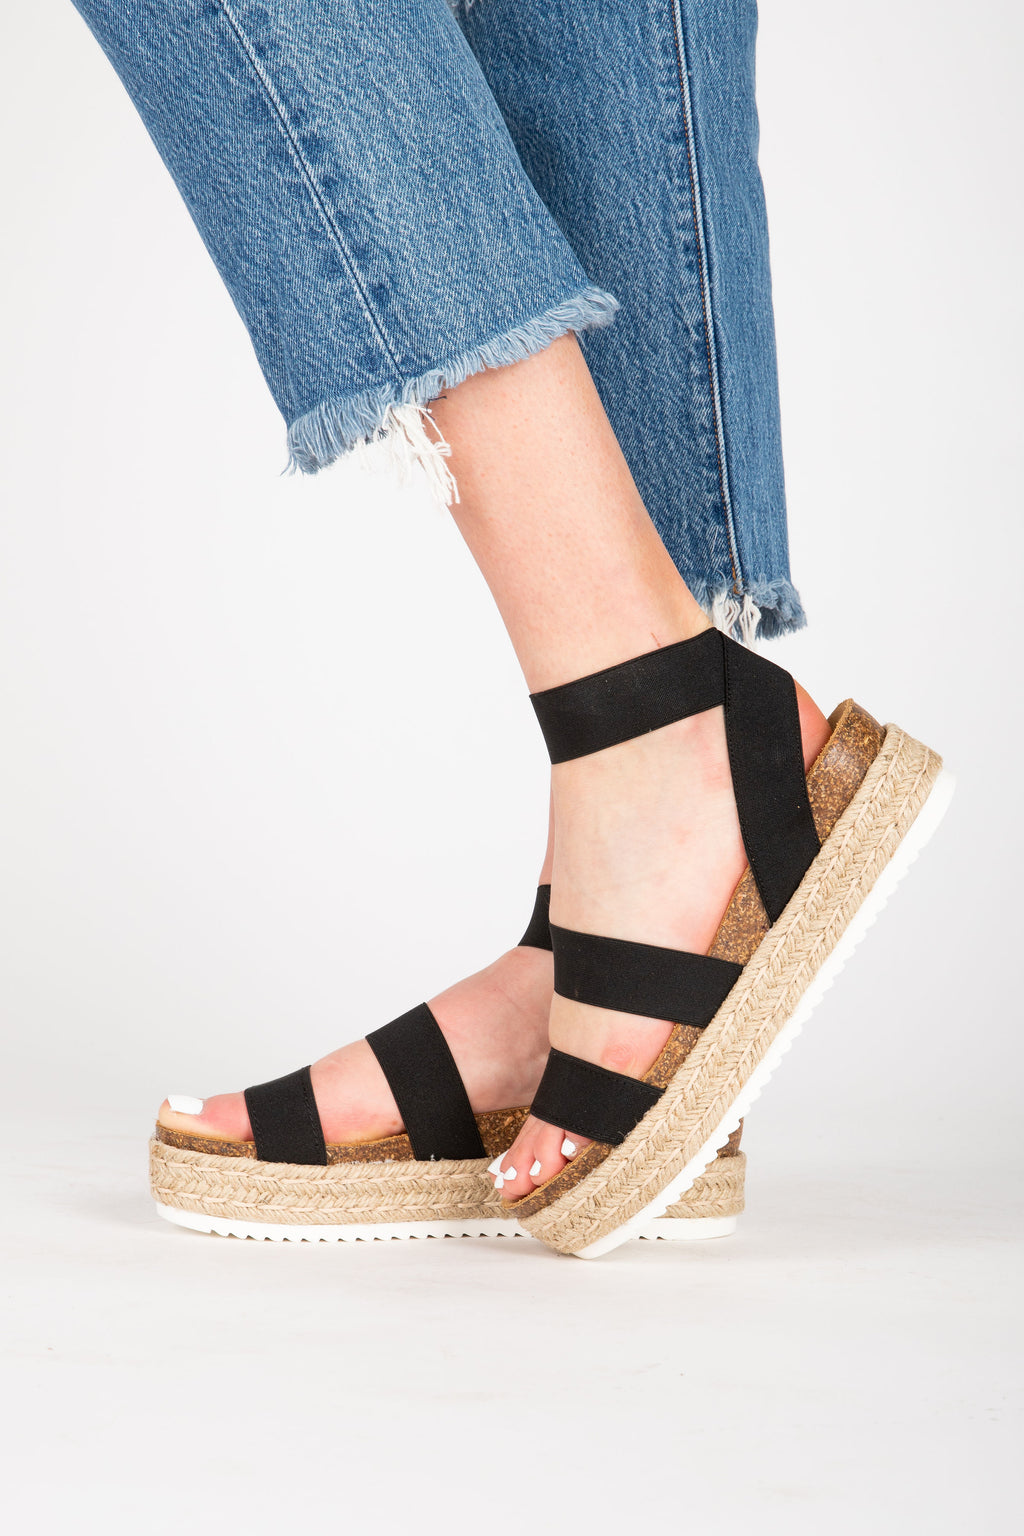 Steve Madden: Kimmie Sandal in Black, studio shoot; front view